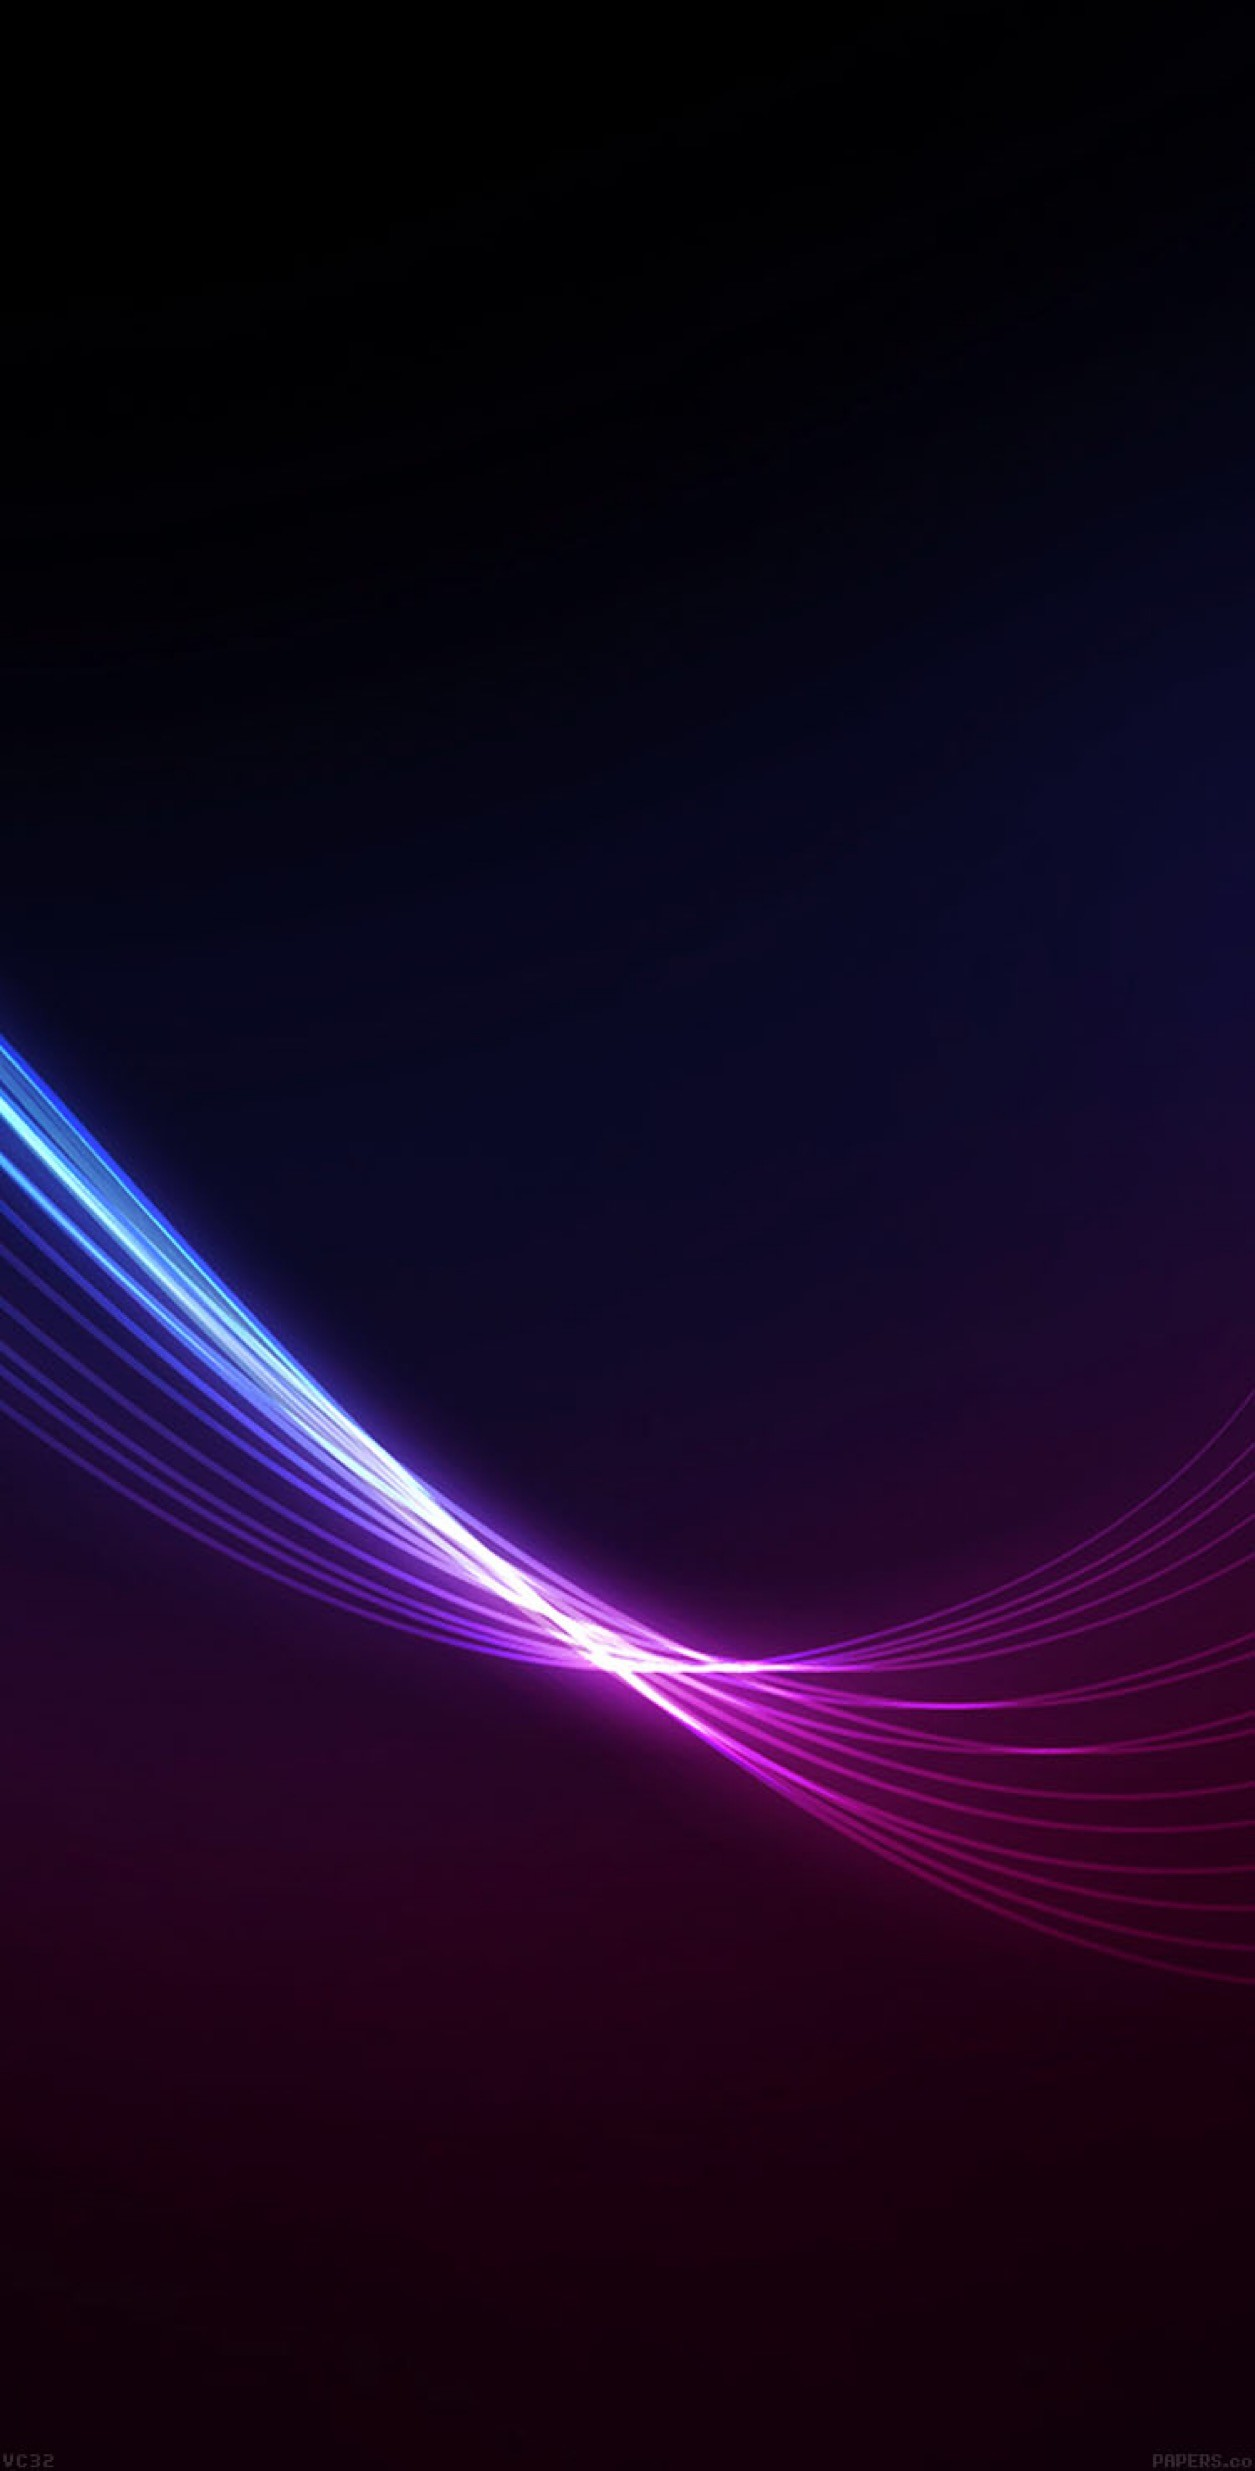 Purple, dark, wallpaper, galaxy, clean, beauty, colour, abstract,